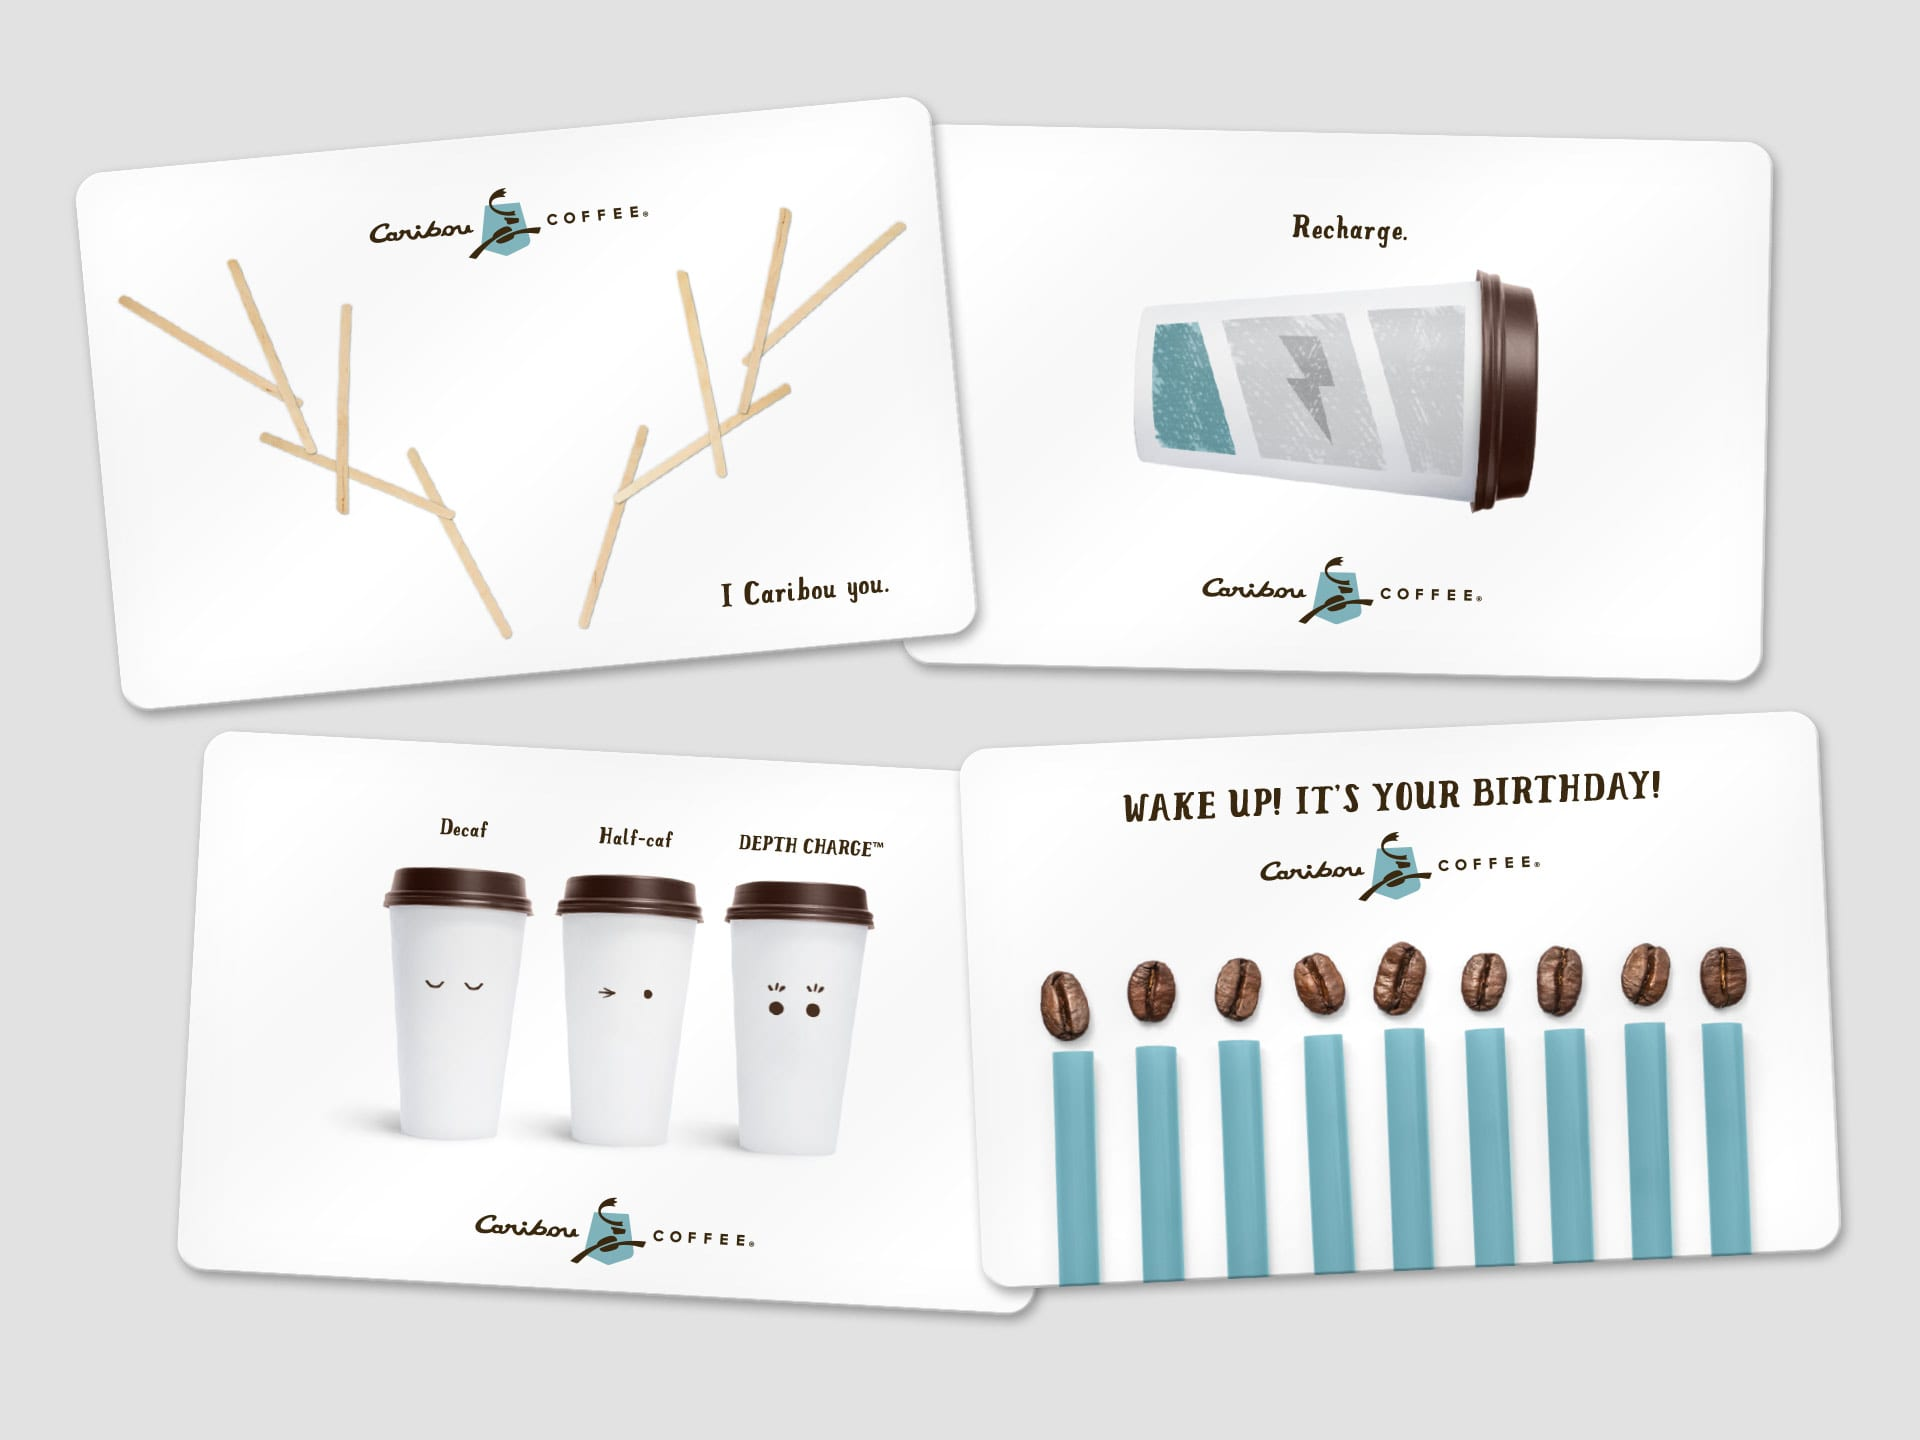 Caribou Gift Card Retouching Holiday 2015 Composition